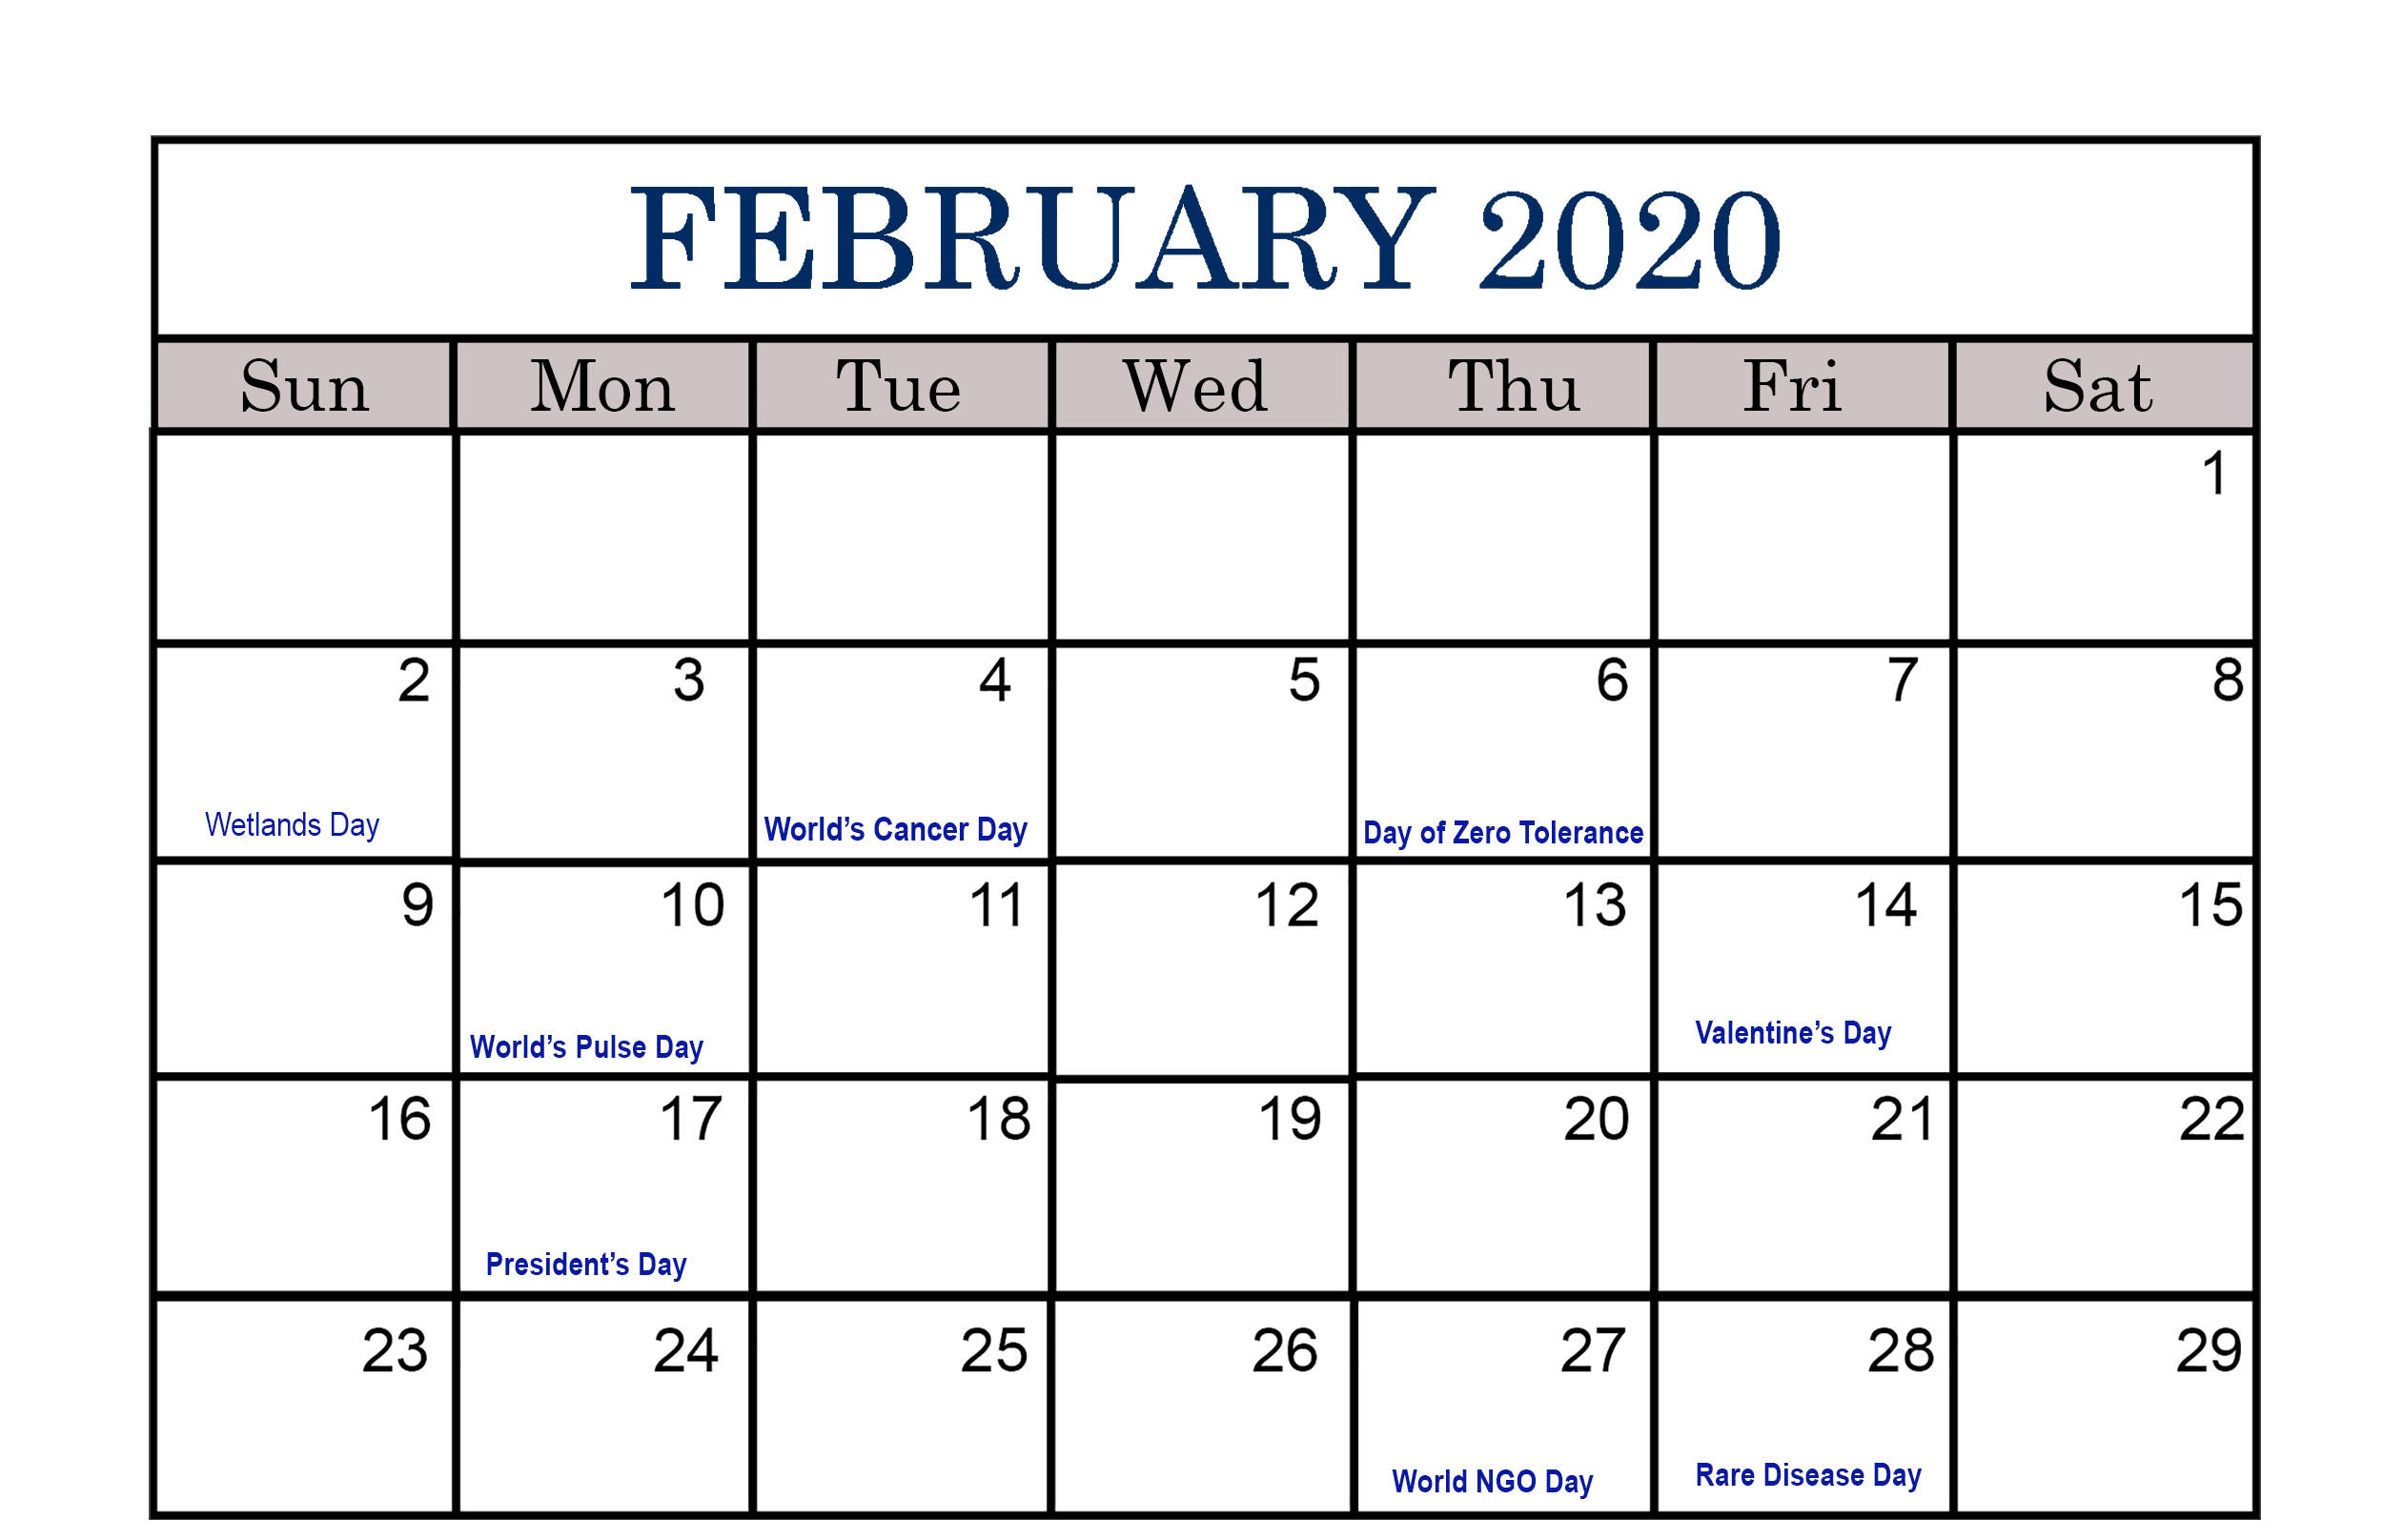 February 2020 Calendar Us Holidays, Events List | Free